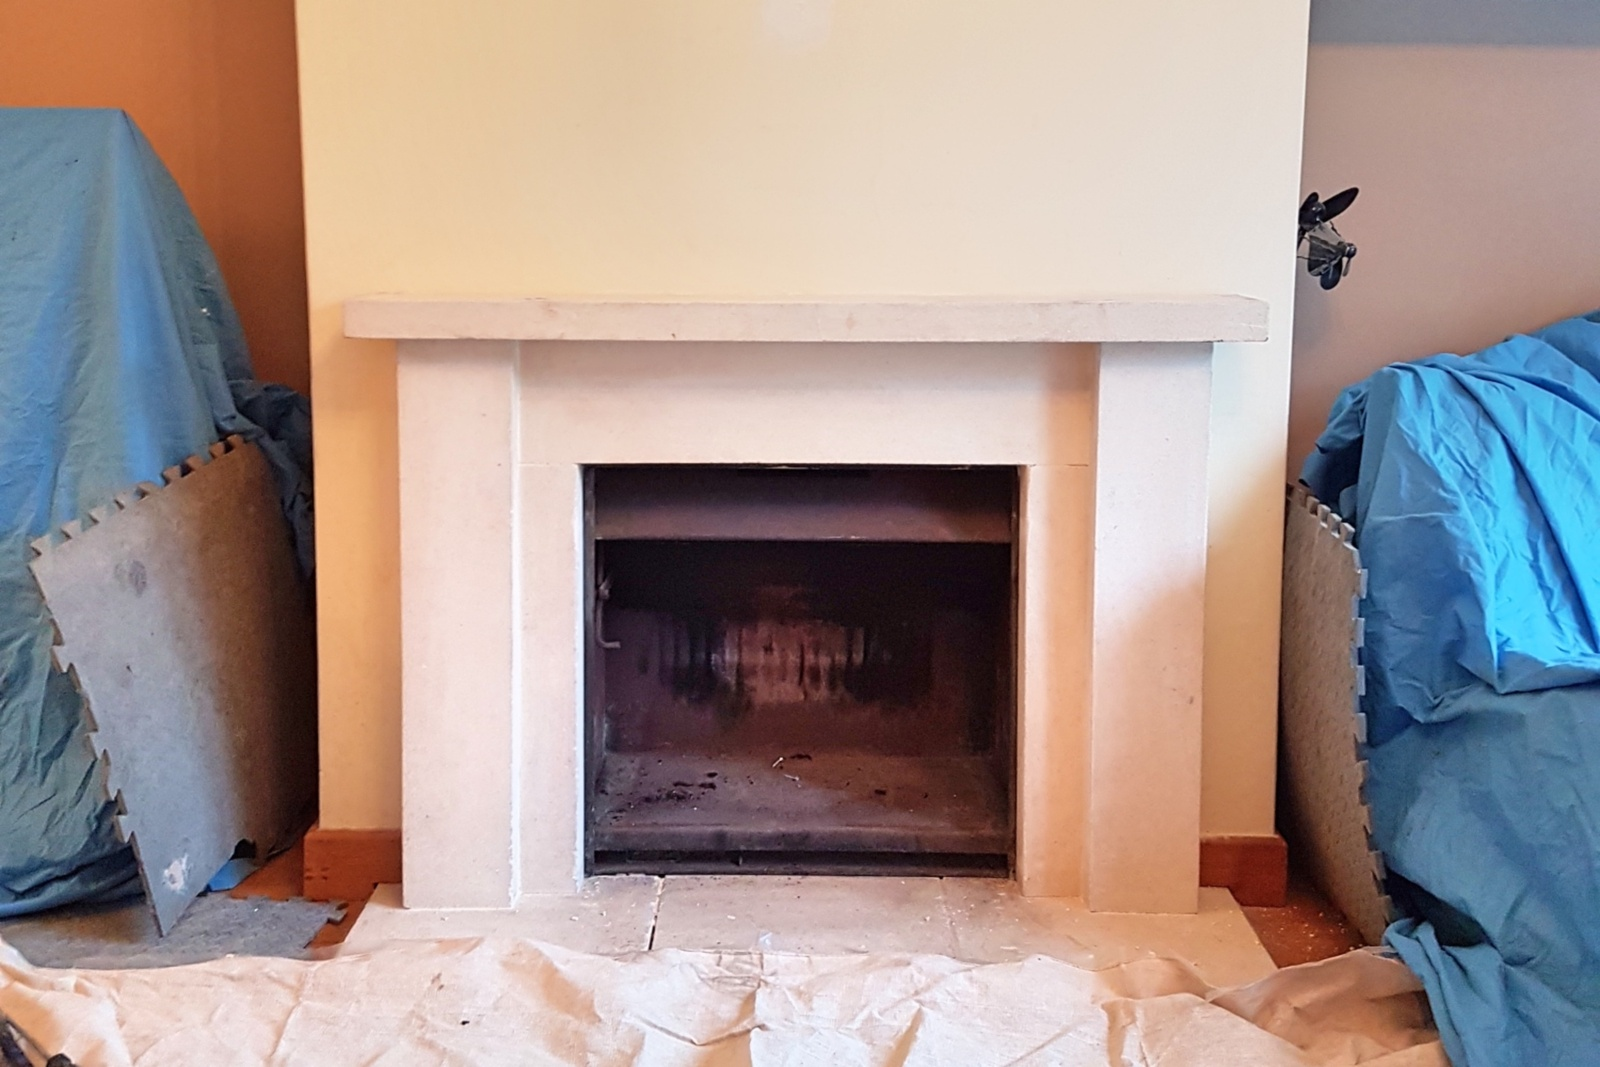 The existing stone fireplace did not suit the modern property